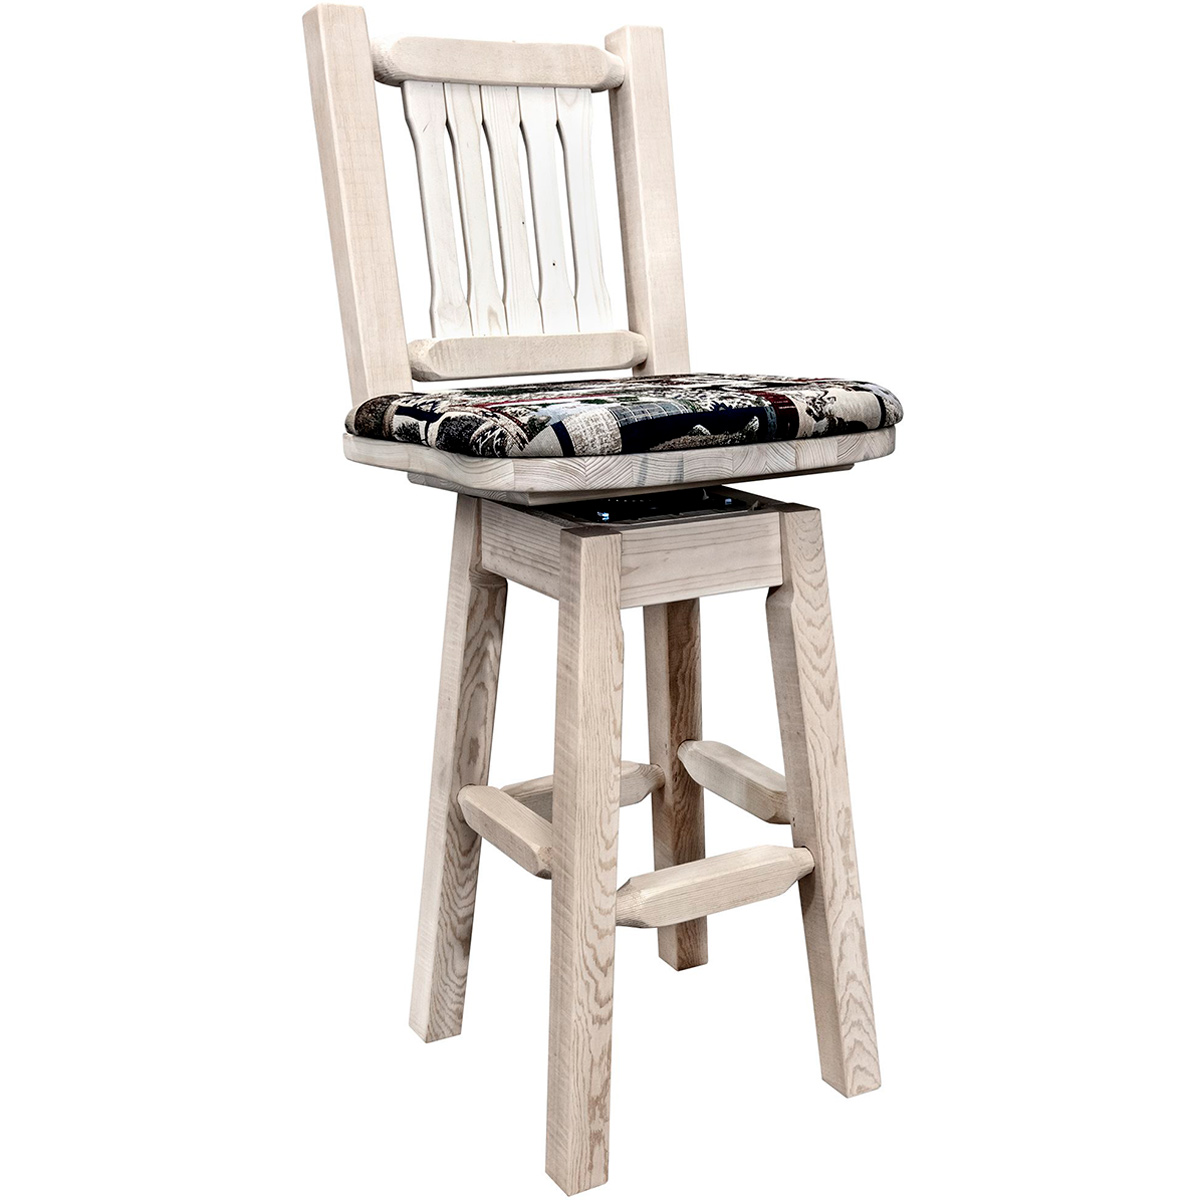 Ranchman's Counter Stool with Back, Swivel, Woodland Upholstery & Clear Lacquer Finish